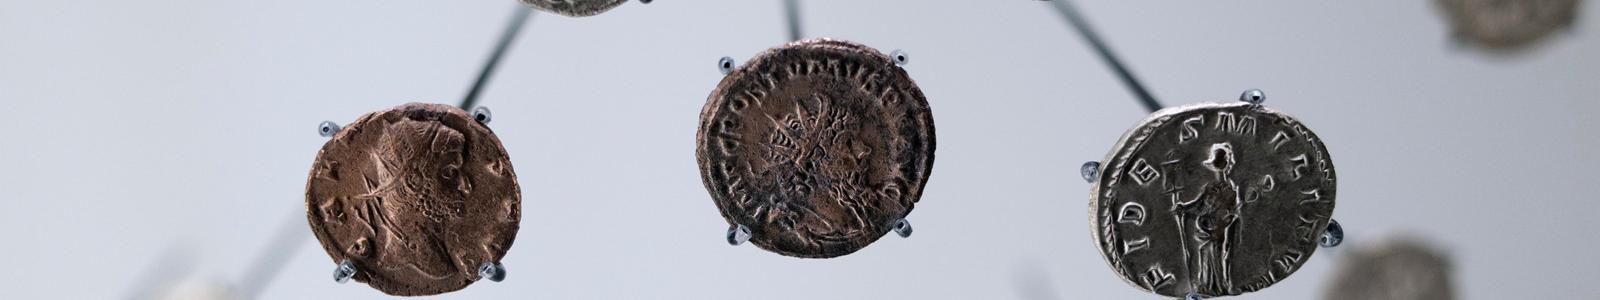 Coin, penny, part of a hoard found at White Lane, Greywell, Mapledurwell and Up Nately, Hampshire in 1989, issued by Henry III, minted by moneyer Robert at Canterbury, Kent, 1251-1272